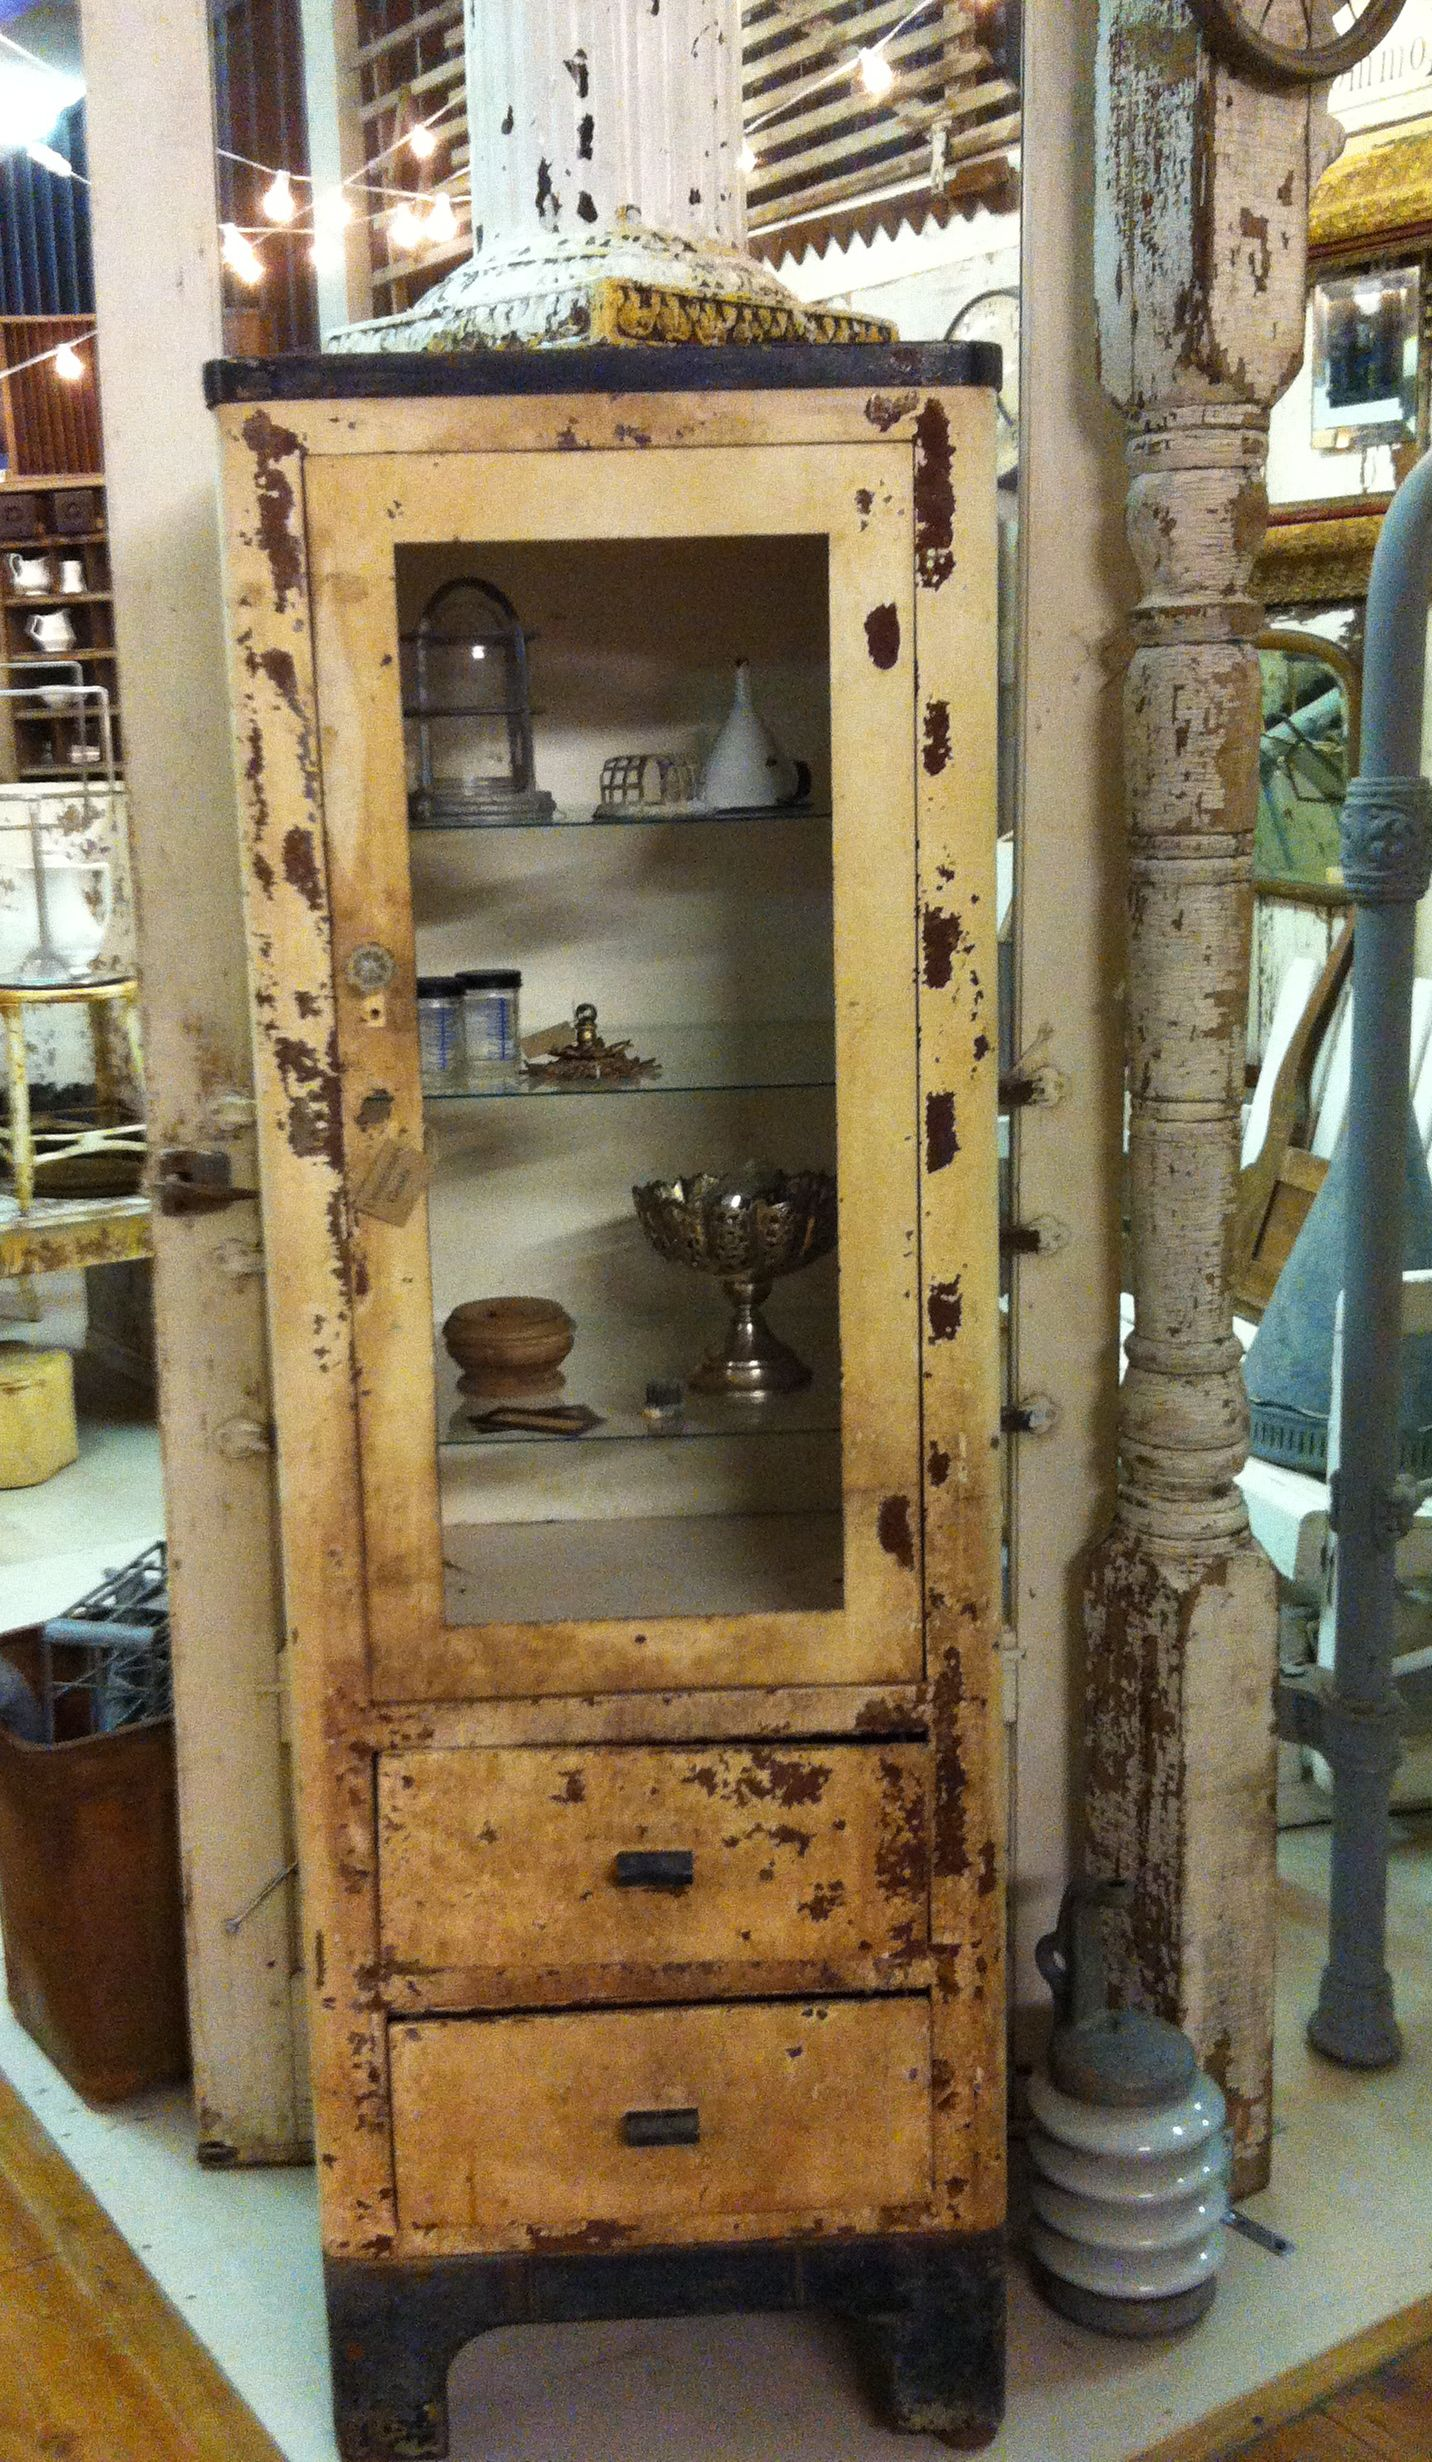 An Antique Medical Cabinet Turned Into A Display Cabinet